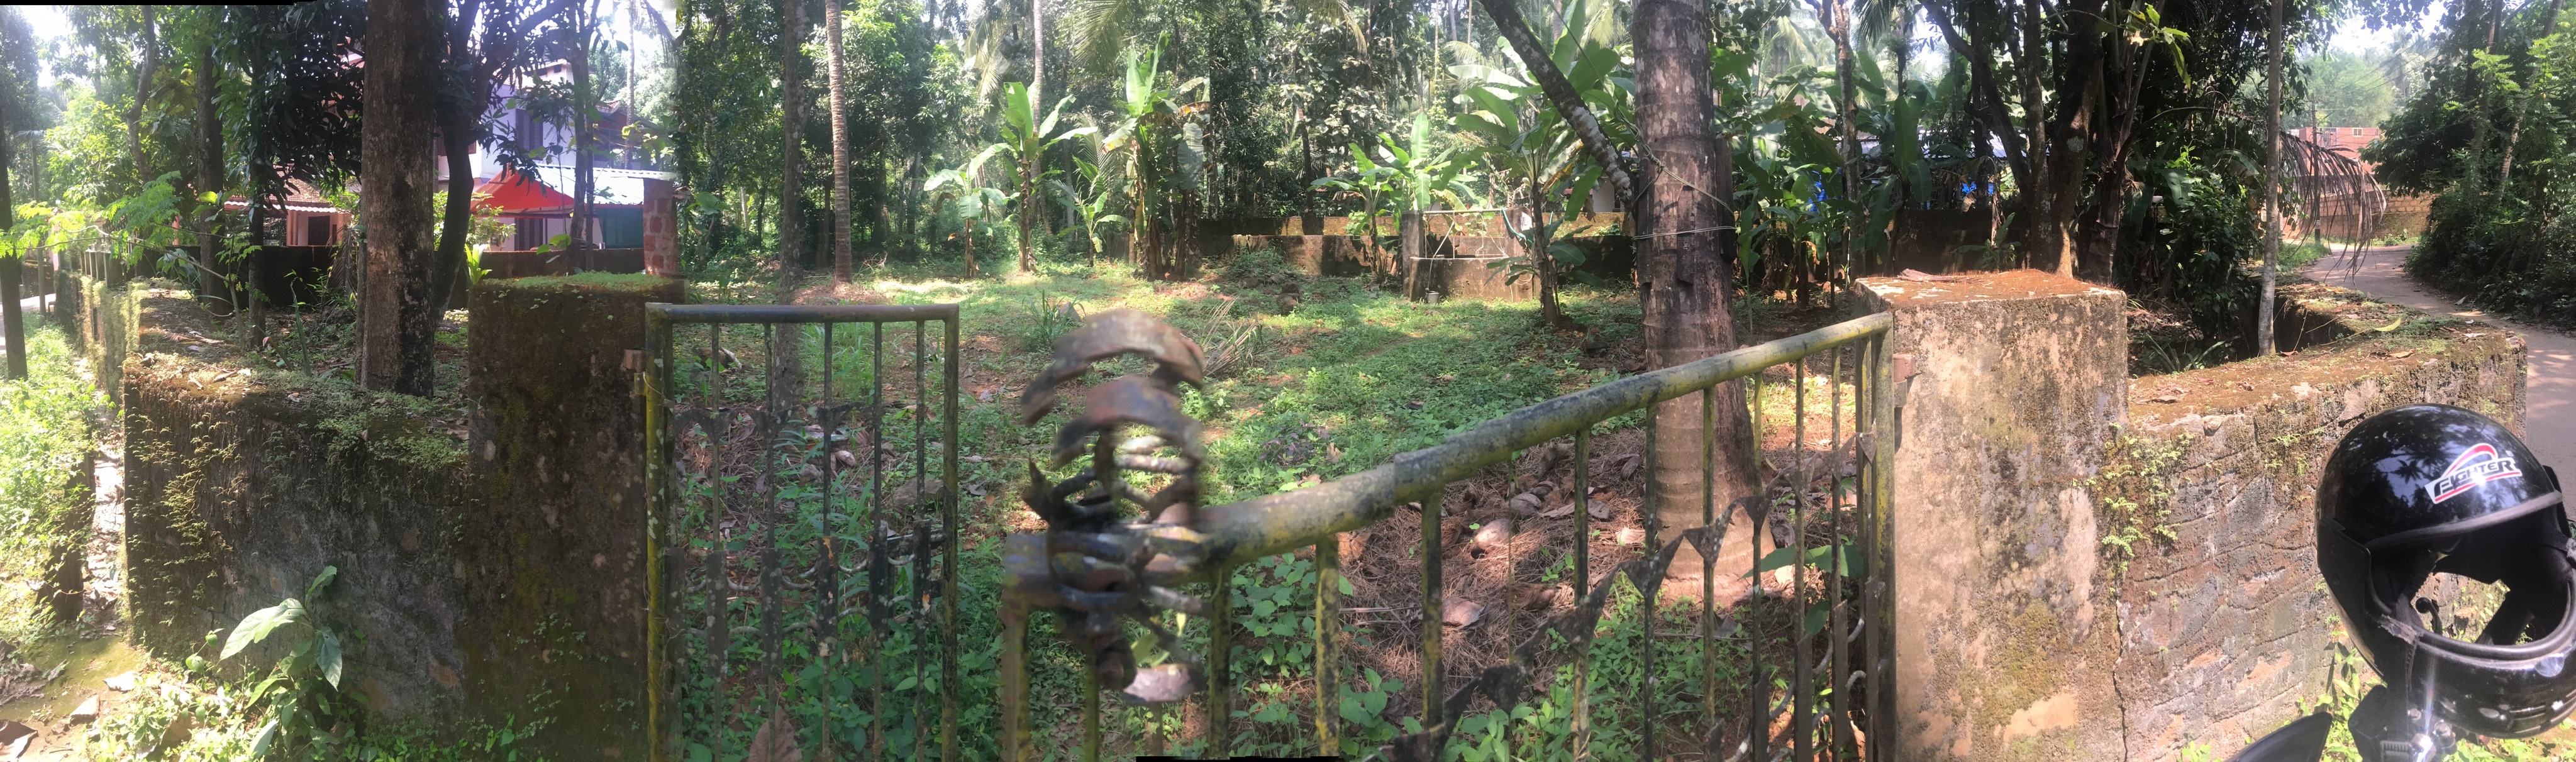 Land for sale in Perinthalmanna